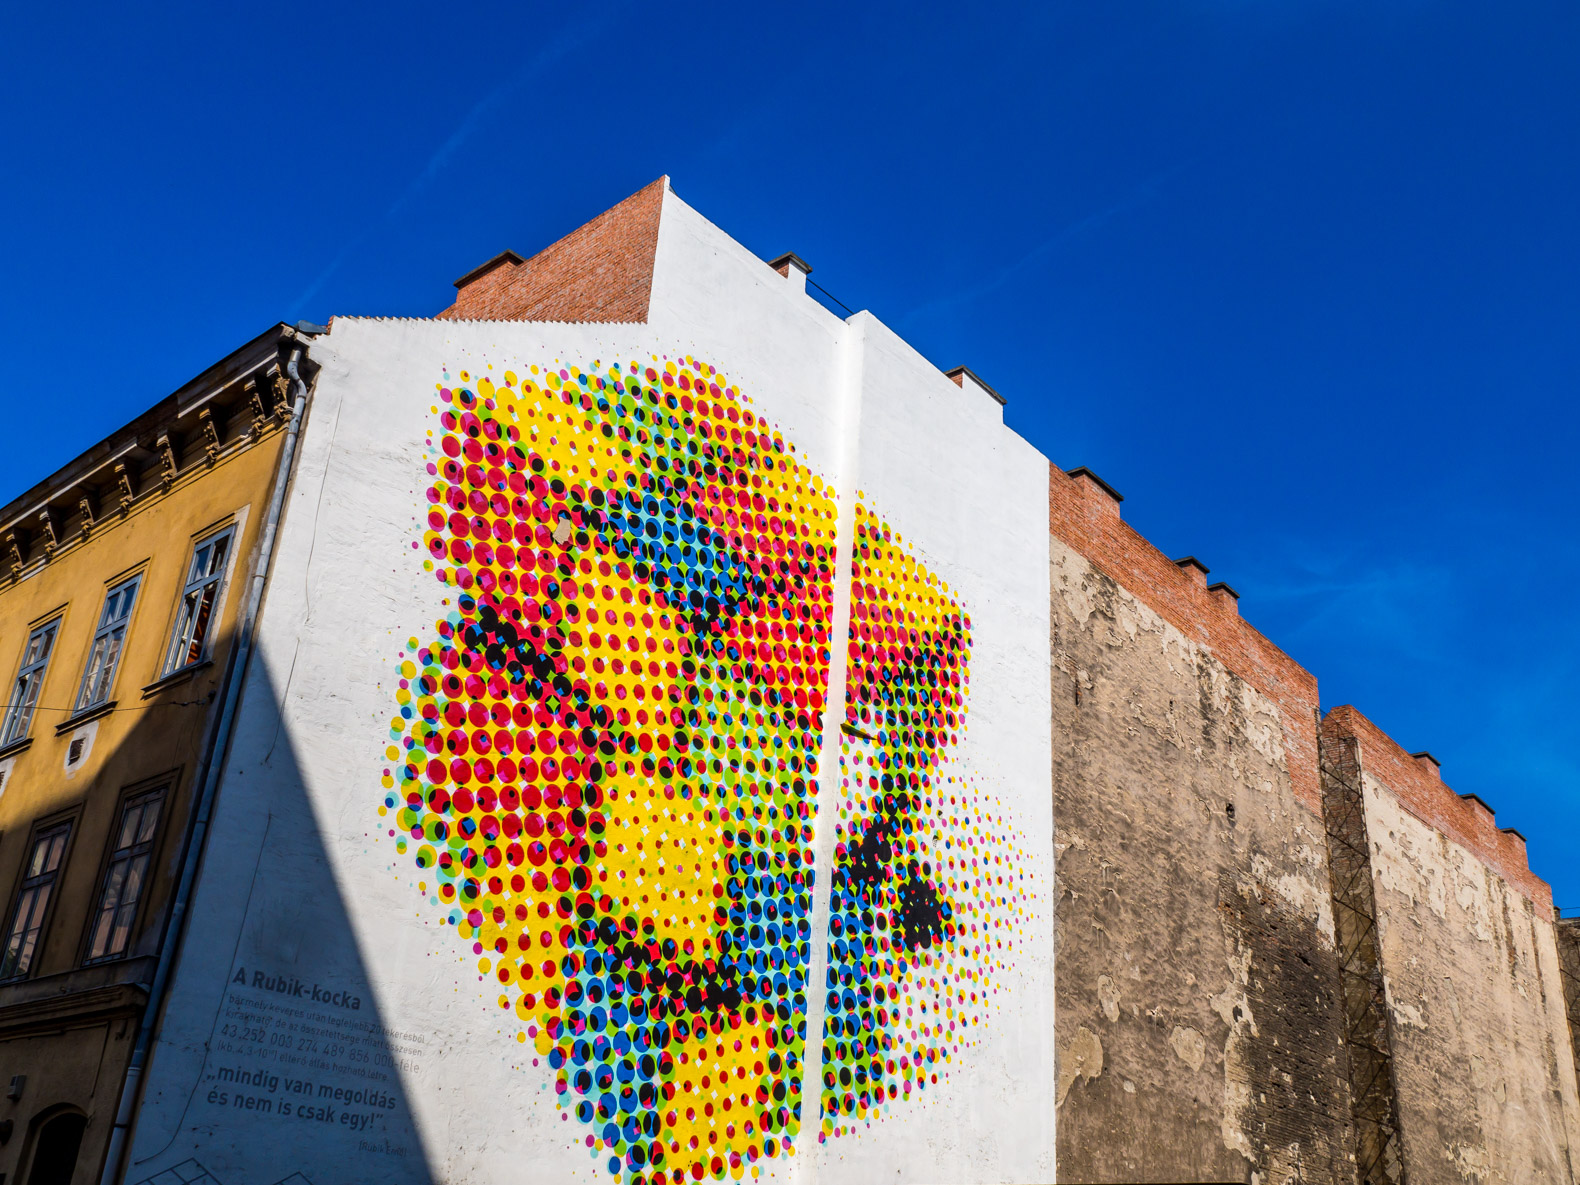 Budapest things to do: admire the street art